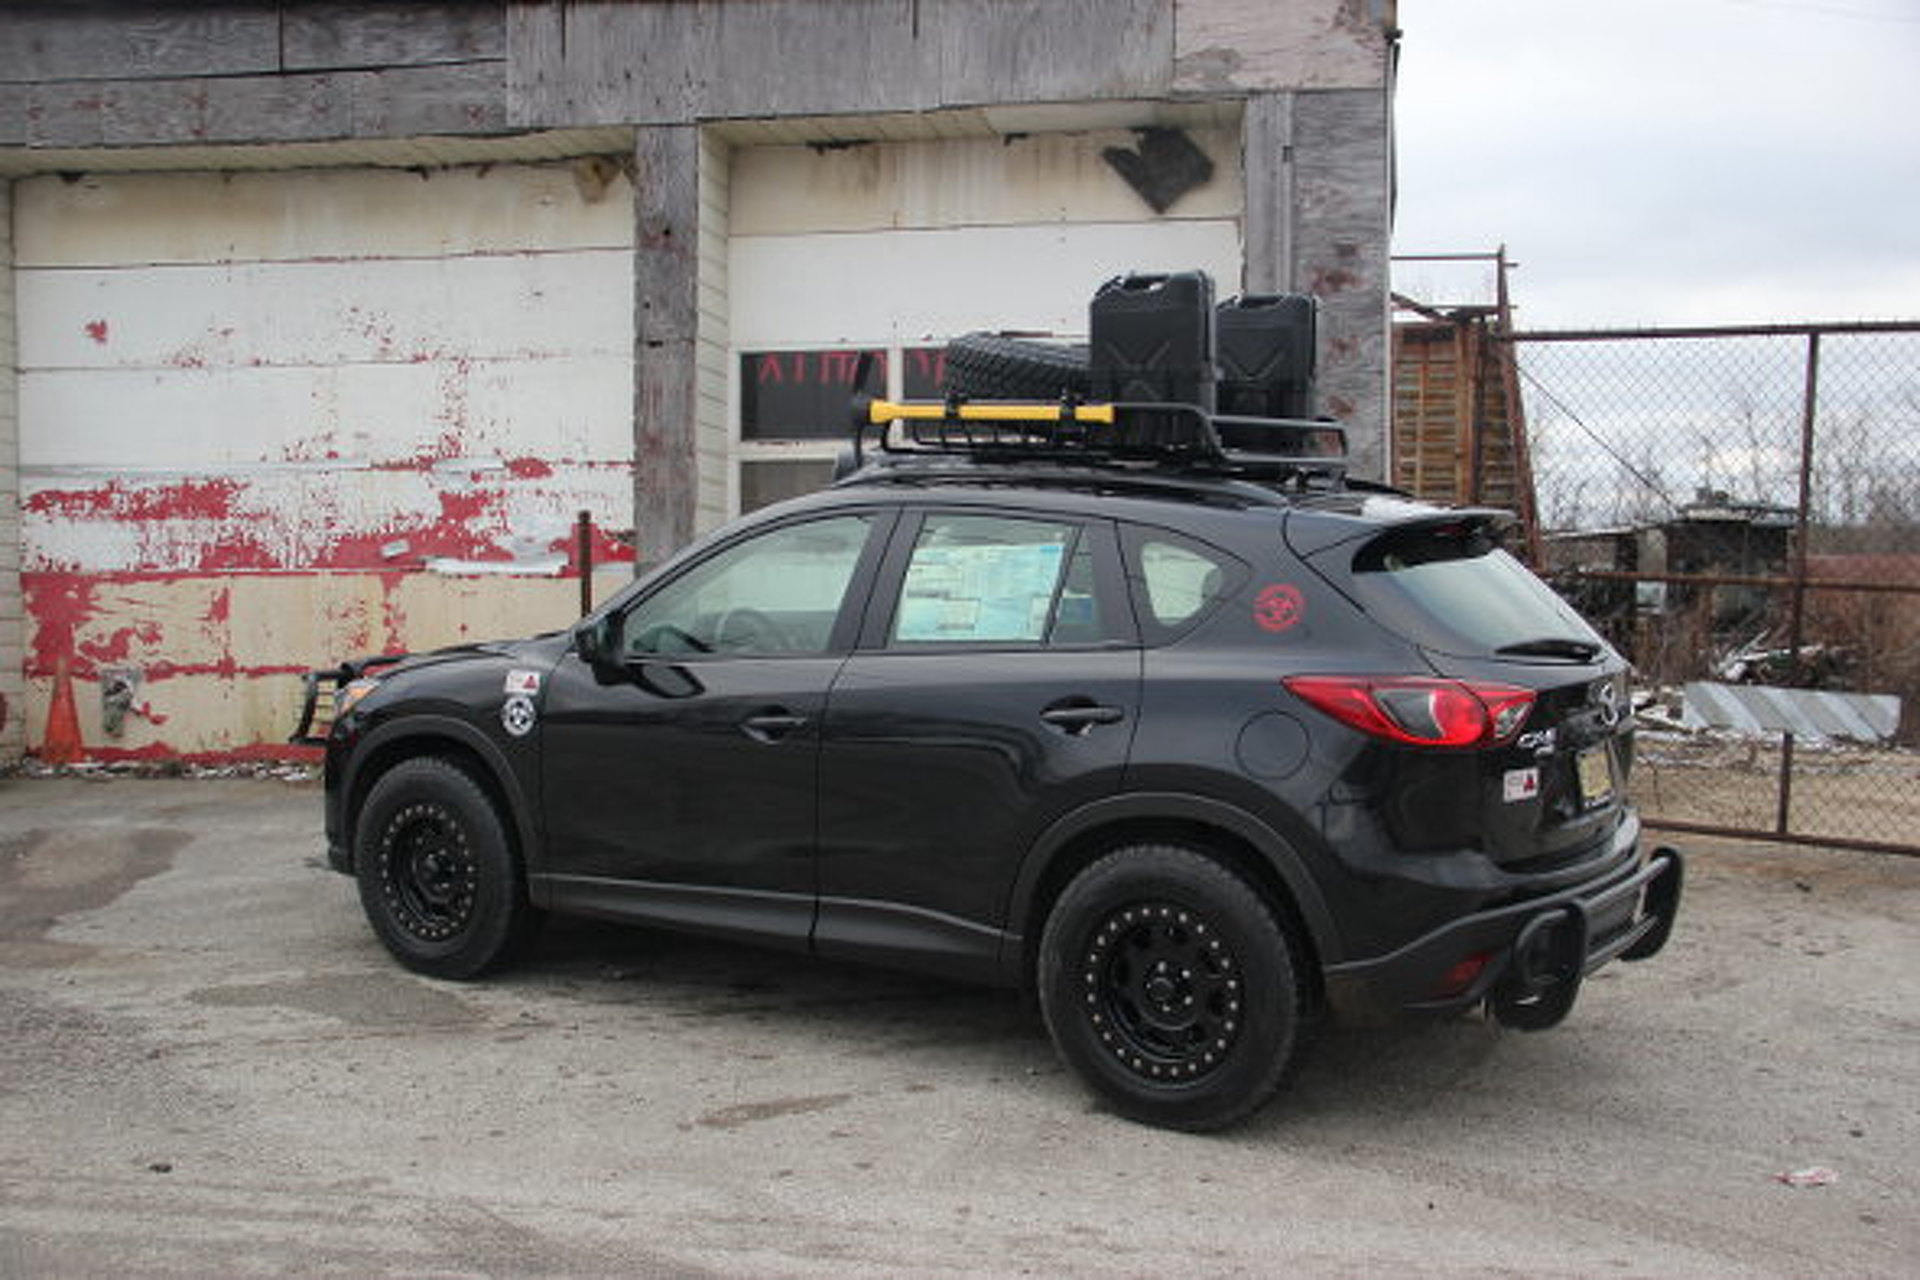 Cj Wilson S Zombie Proof Mazda Cx 5